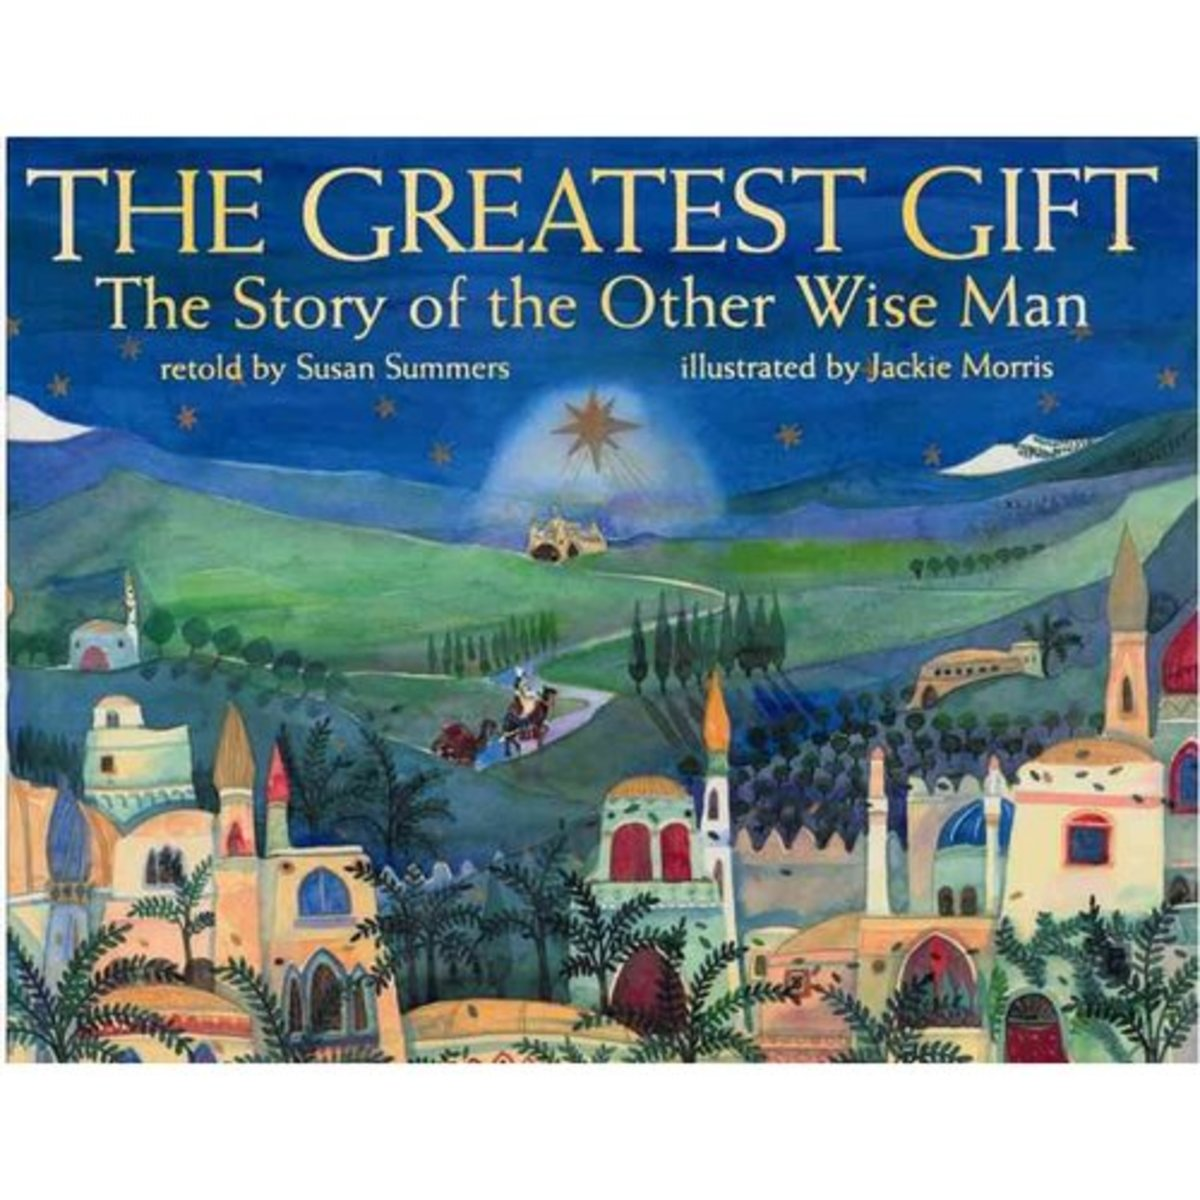 The Greatest Gift: A Christmas Picture Book for All Ages